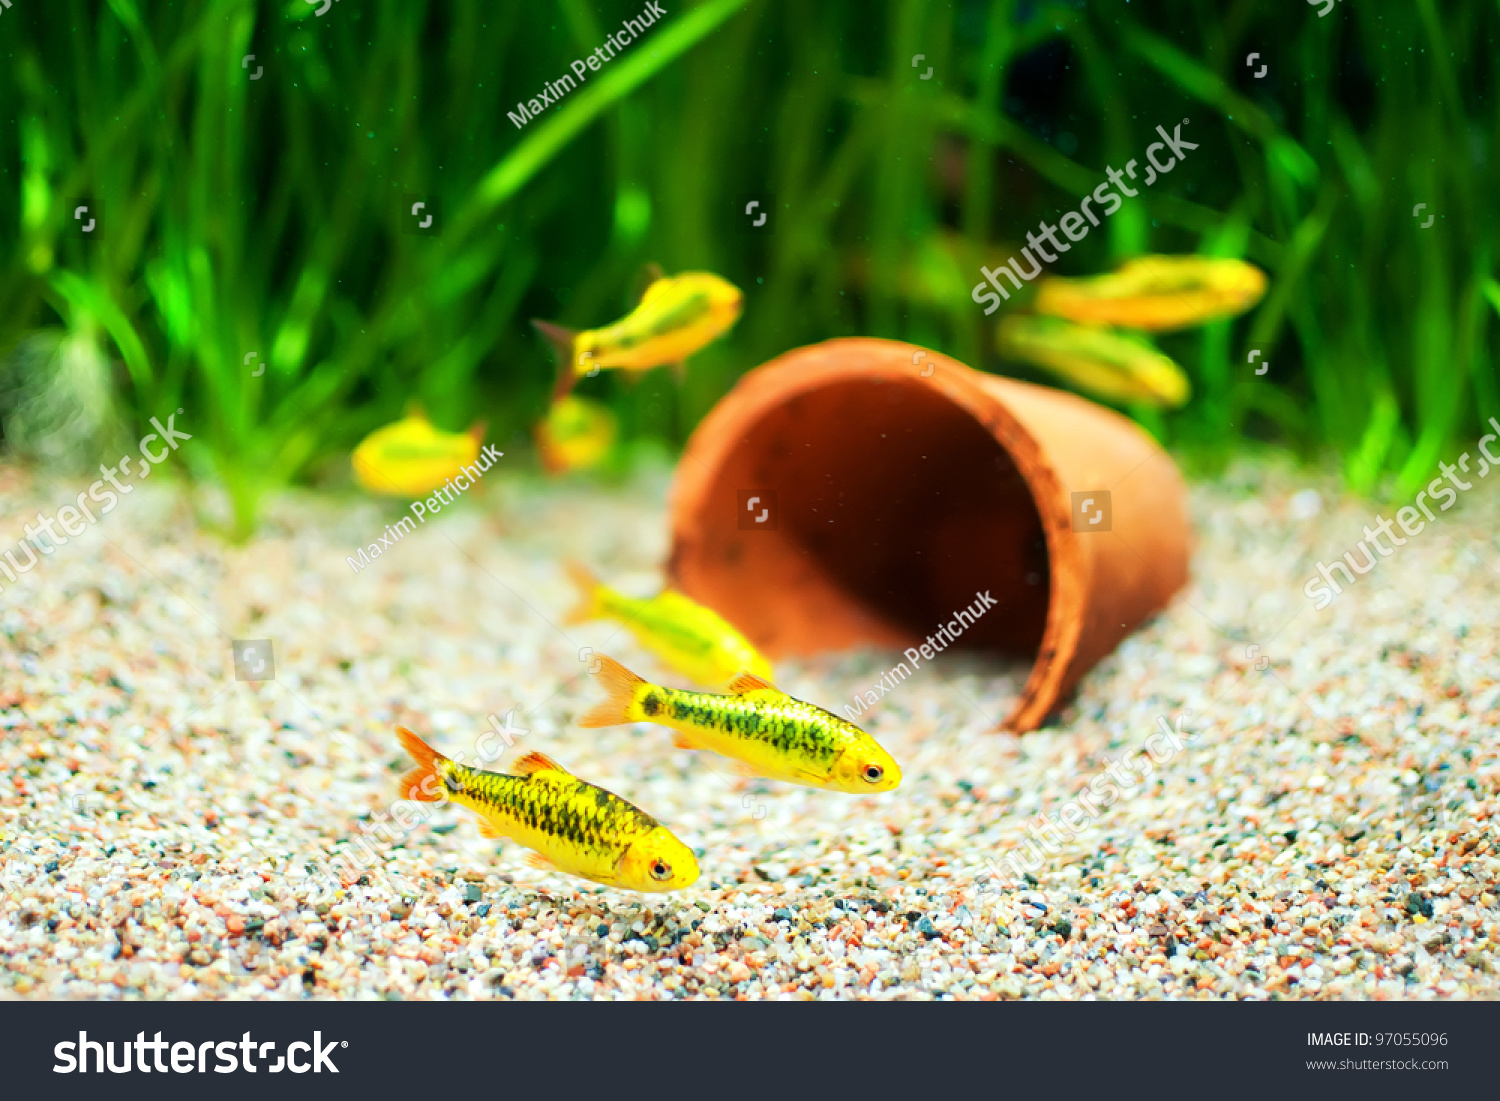 Small fish for freshwater aquarium - Group Of A Small Gold Barb Fish In An Aquarium